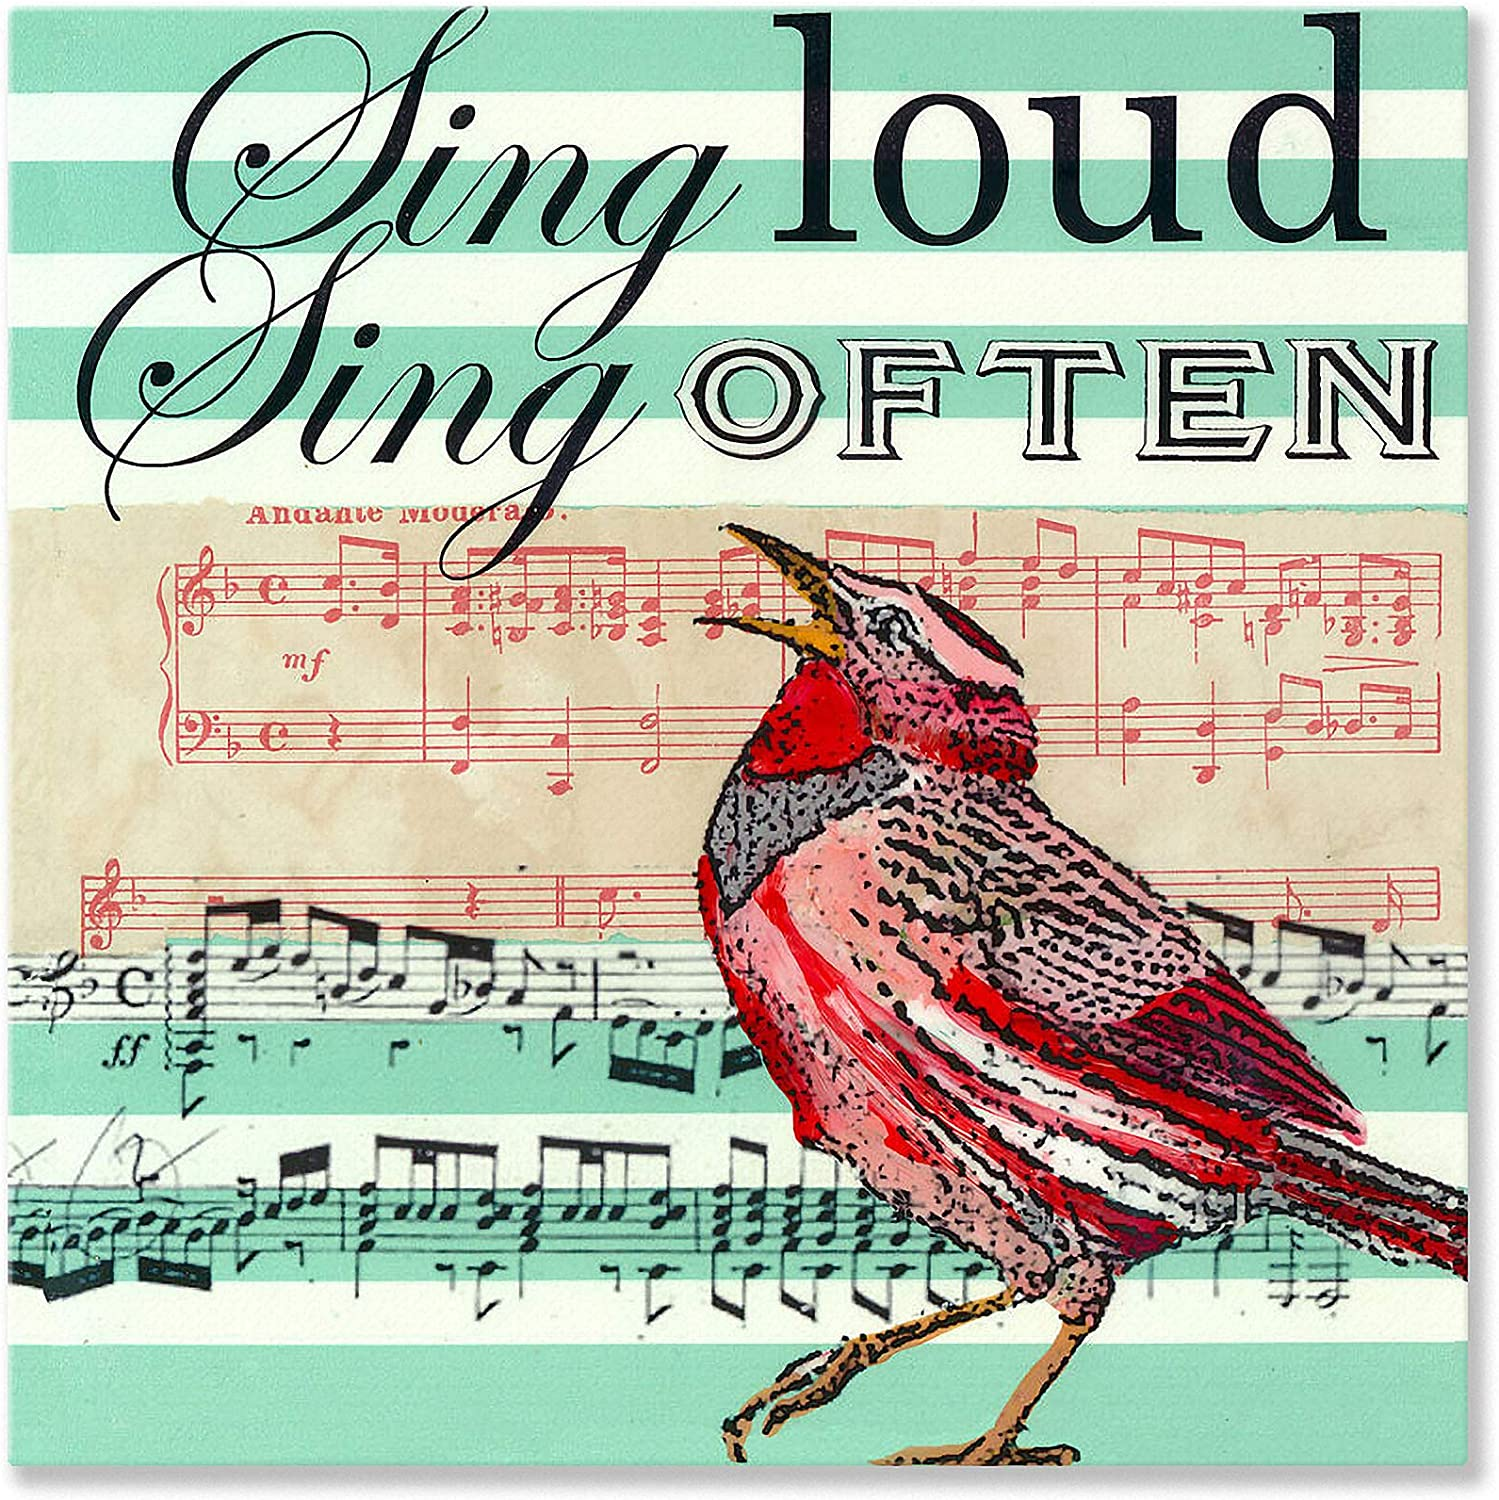 Oopsy Daisy Sing Loud Sing often Stretched Canvas Wall Art by Shelly Kennedy, 14 by 14Inch